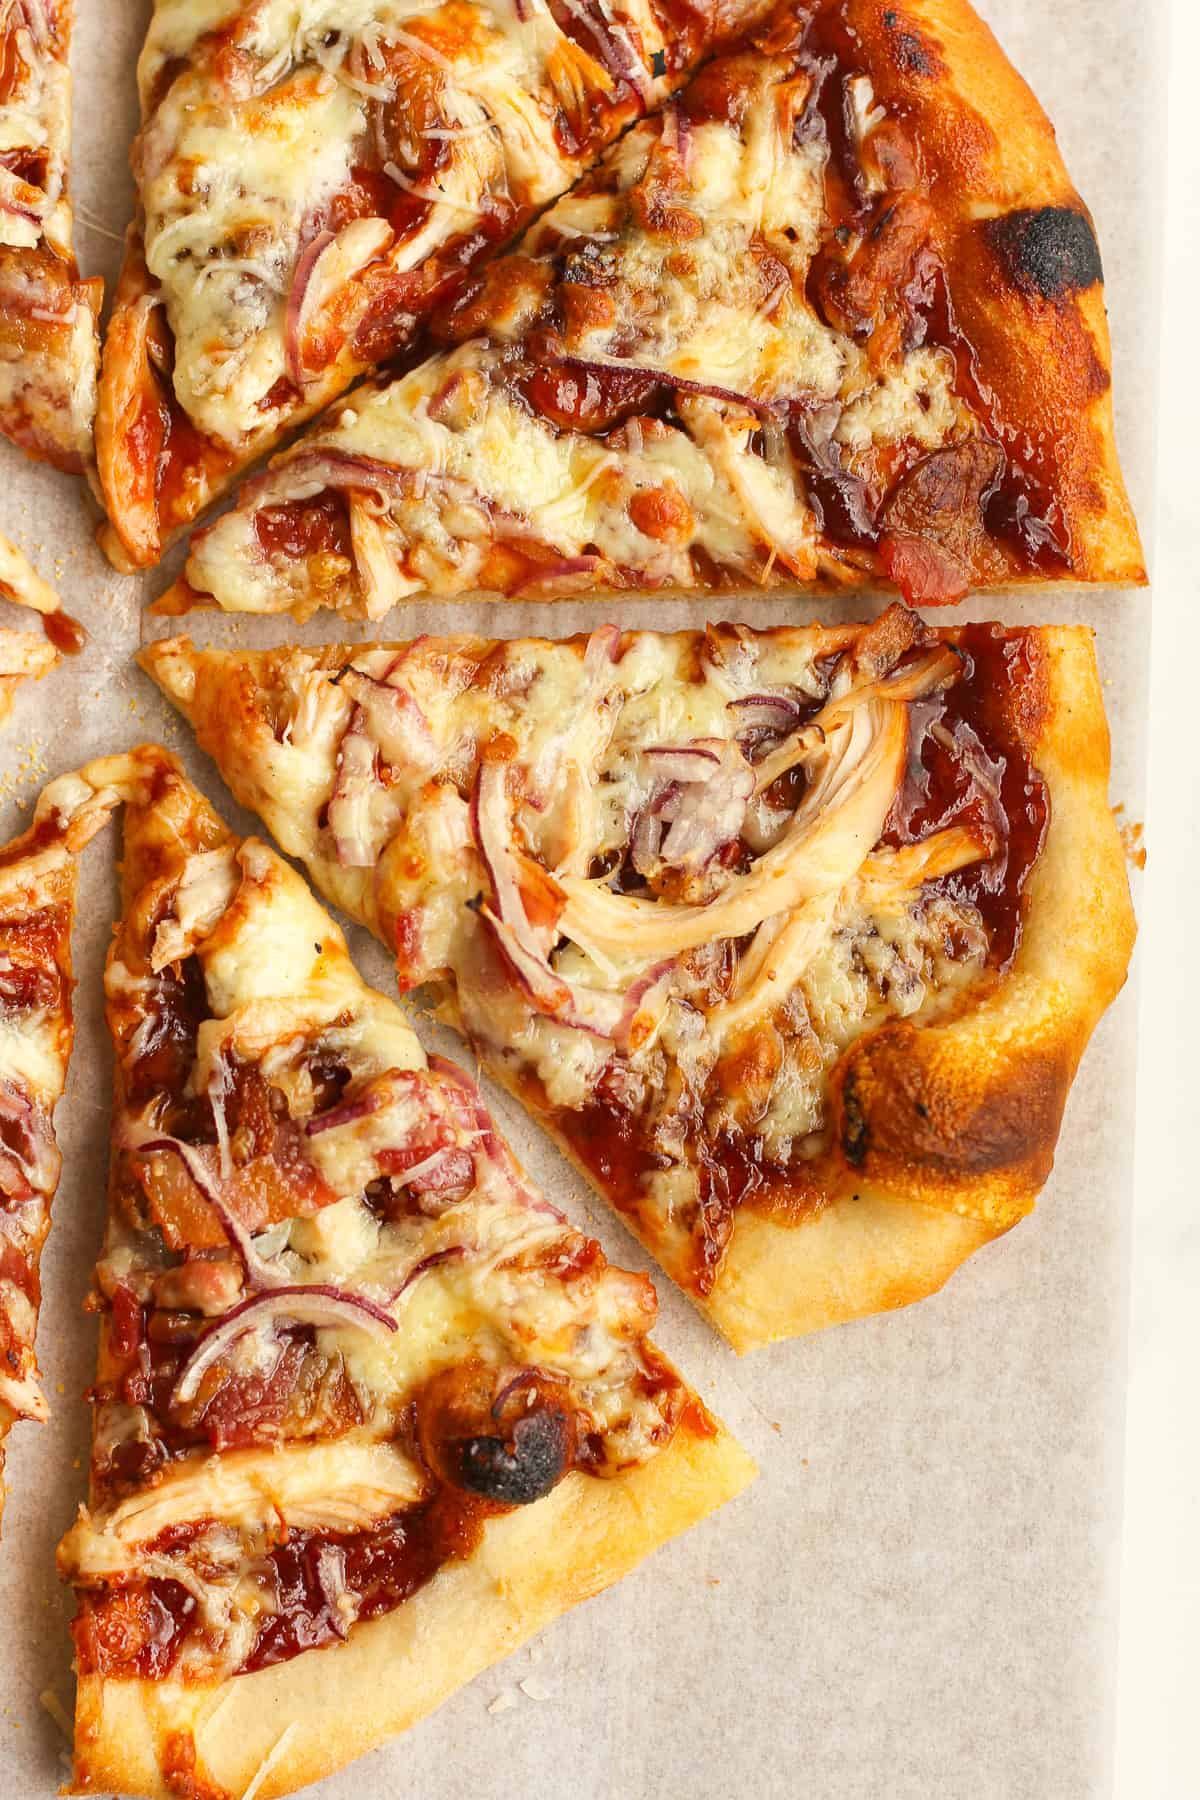 Closeup on three slices of chicken bacon pizza.